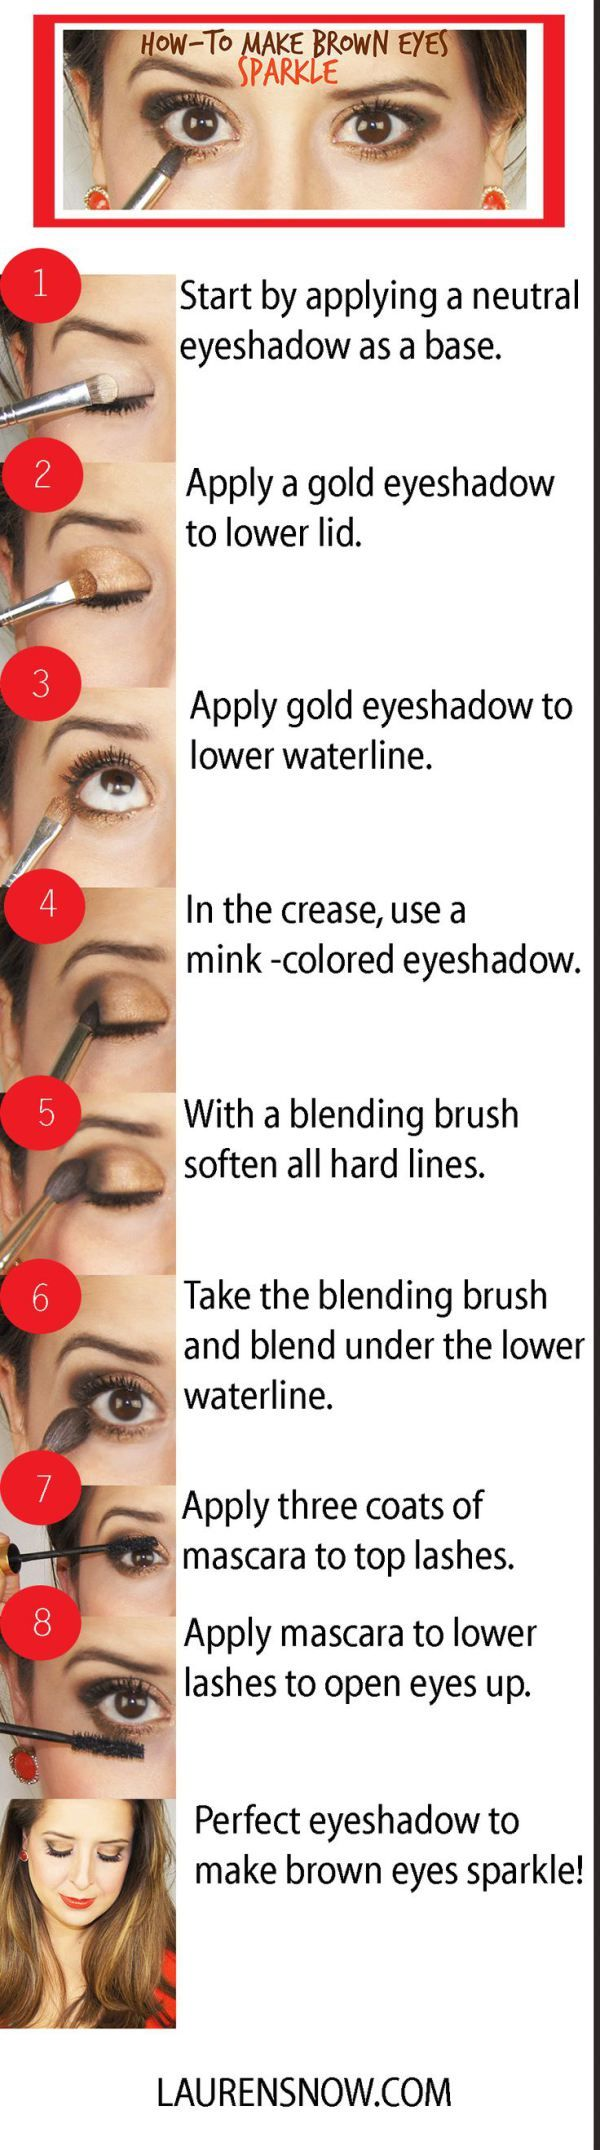 How-to make brown eyes sparkle